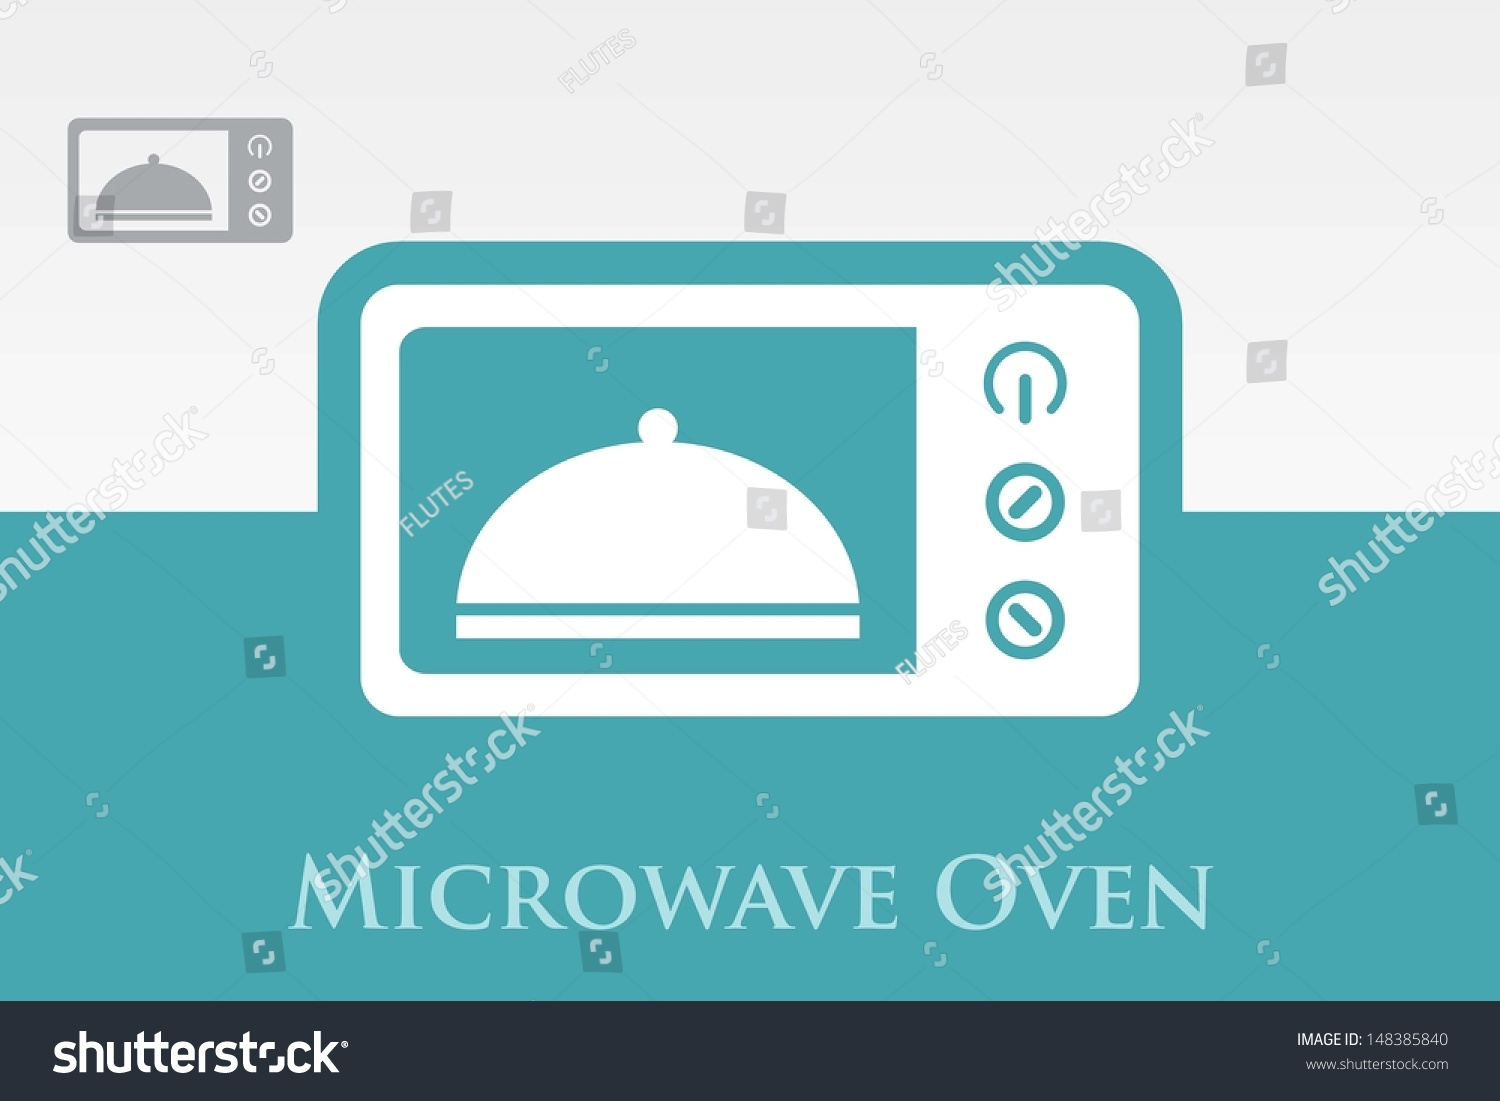 Microwave oven symbol vector stock vector 148385840 shutterstock microwave oven symbol vector buycottarizona Image collections